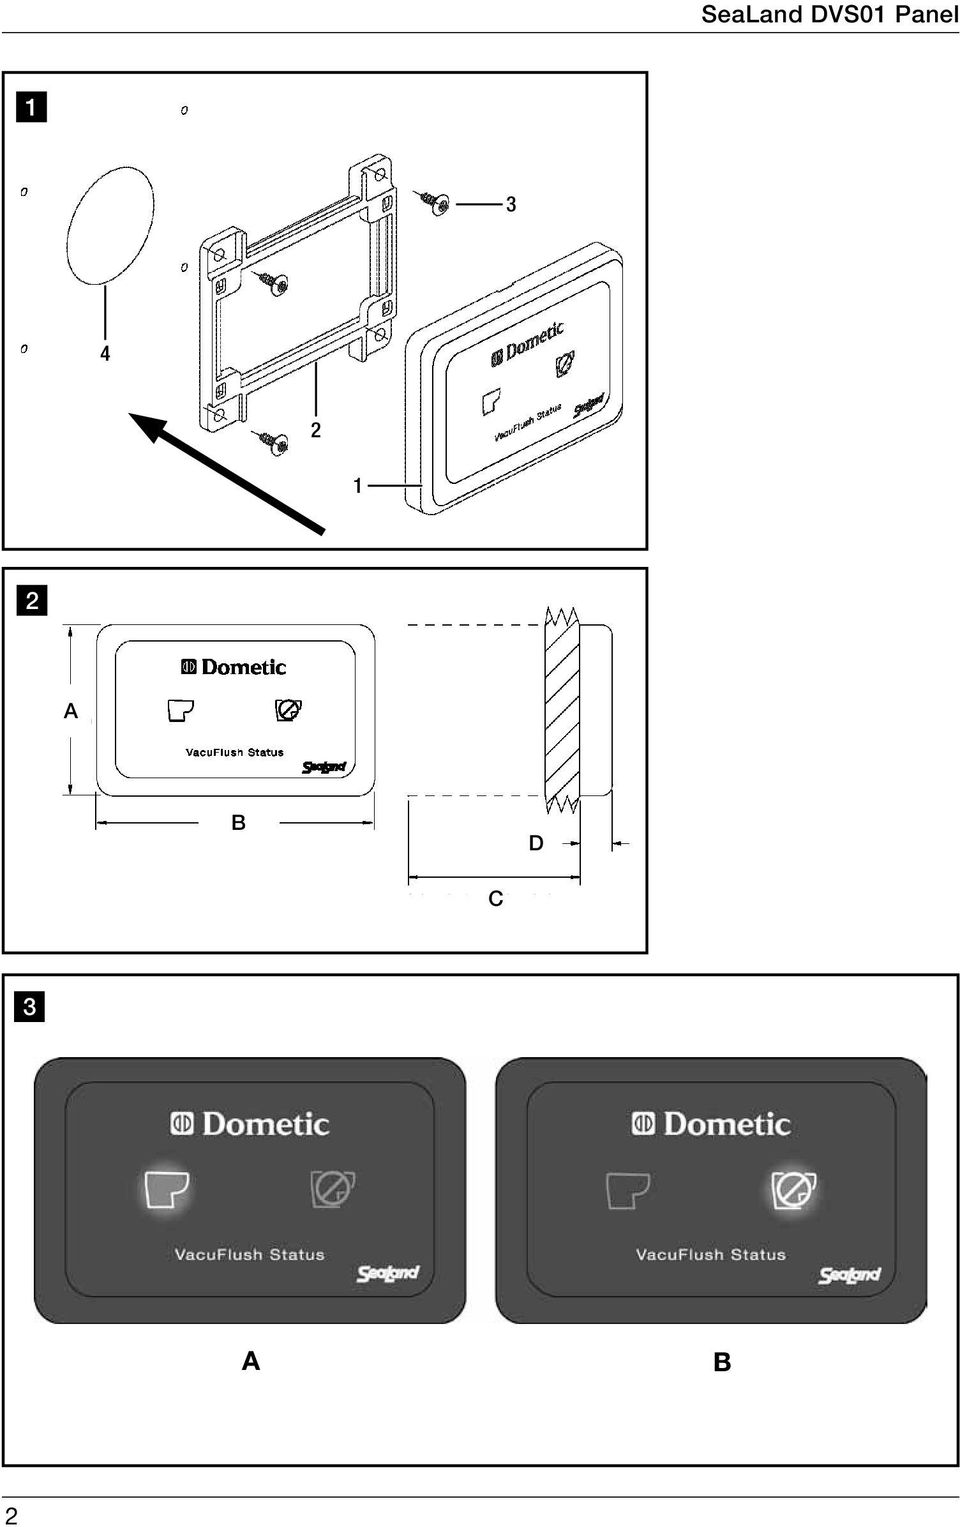 dometic led light kit wiring schematic 74 bl fotografie de \u2022